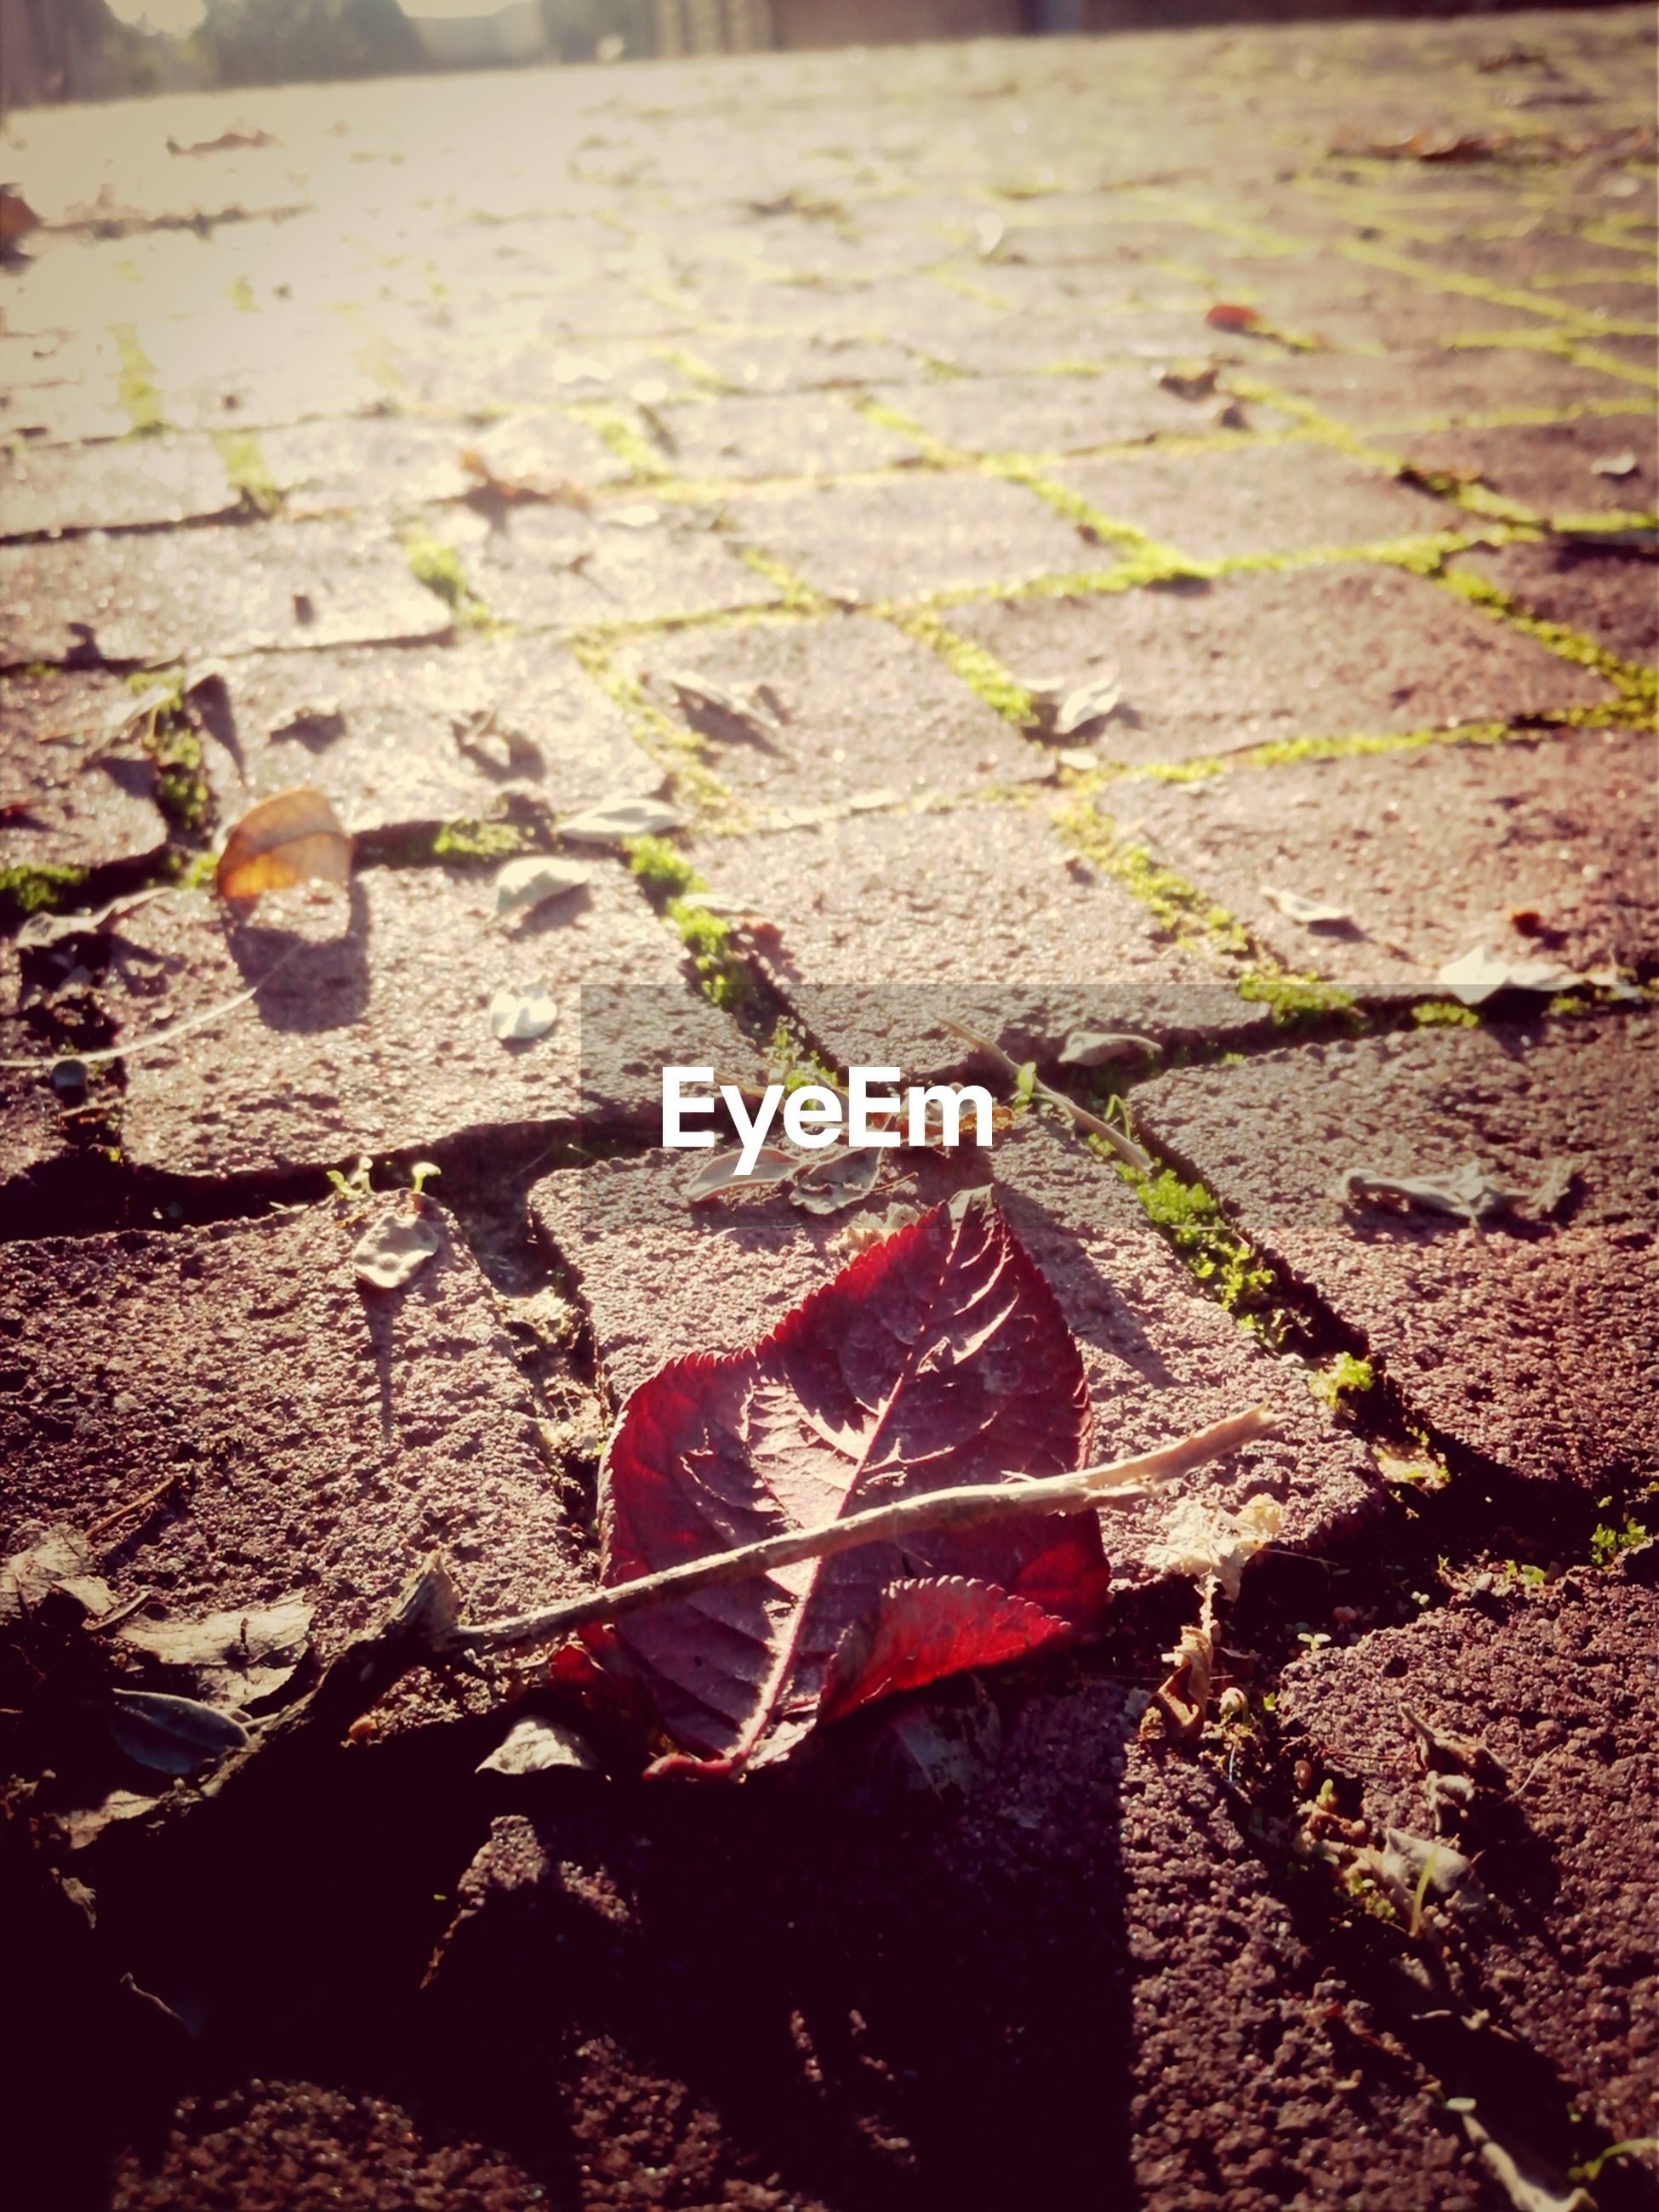 leaf, high angle view, autumn, nature, fallen, outdoors, dry, day, sunlight, close-up, change, red, ground, no people, street, textured, falling, leaves, plant, season